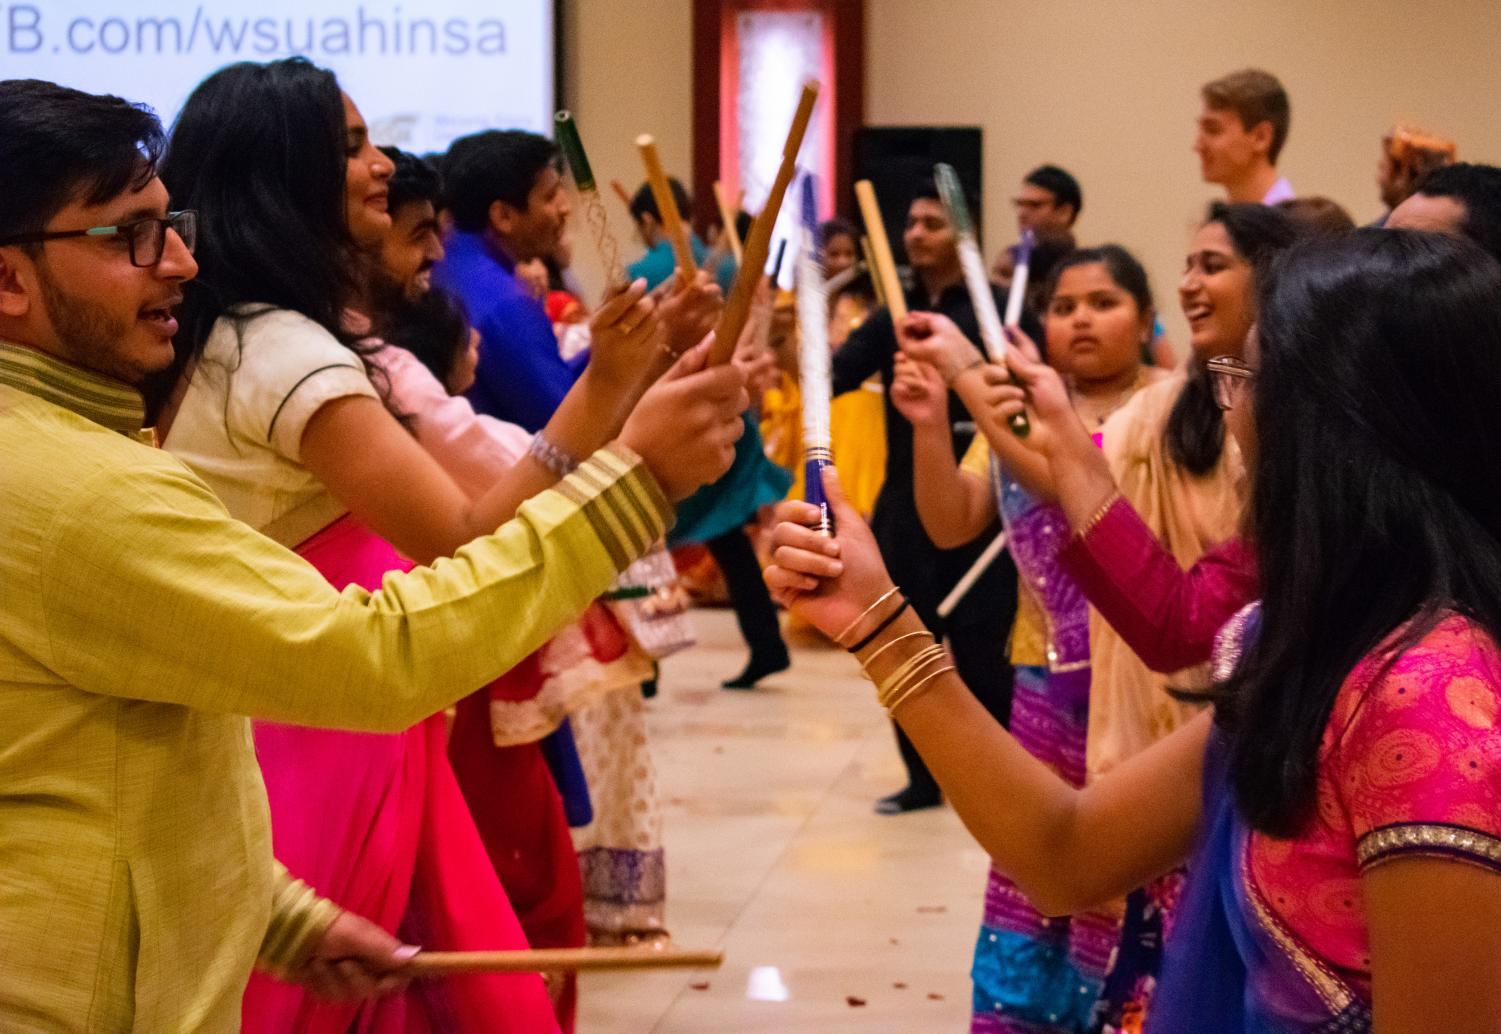 PHOTOS: AHINSA hosts Garba Night